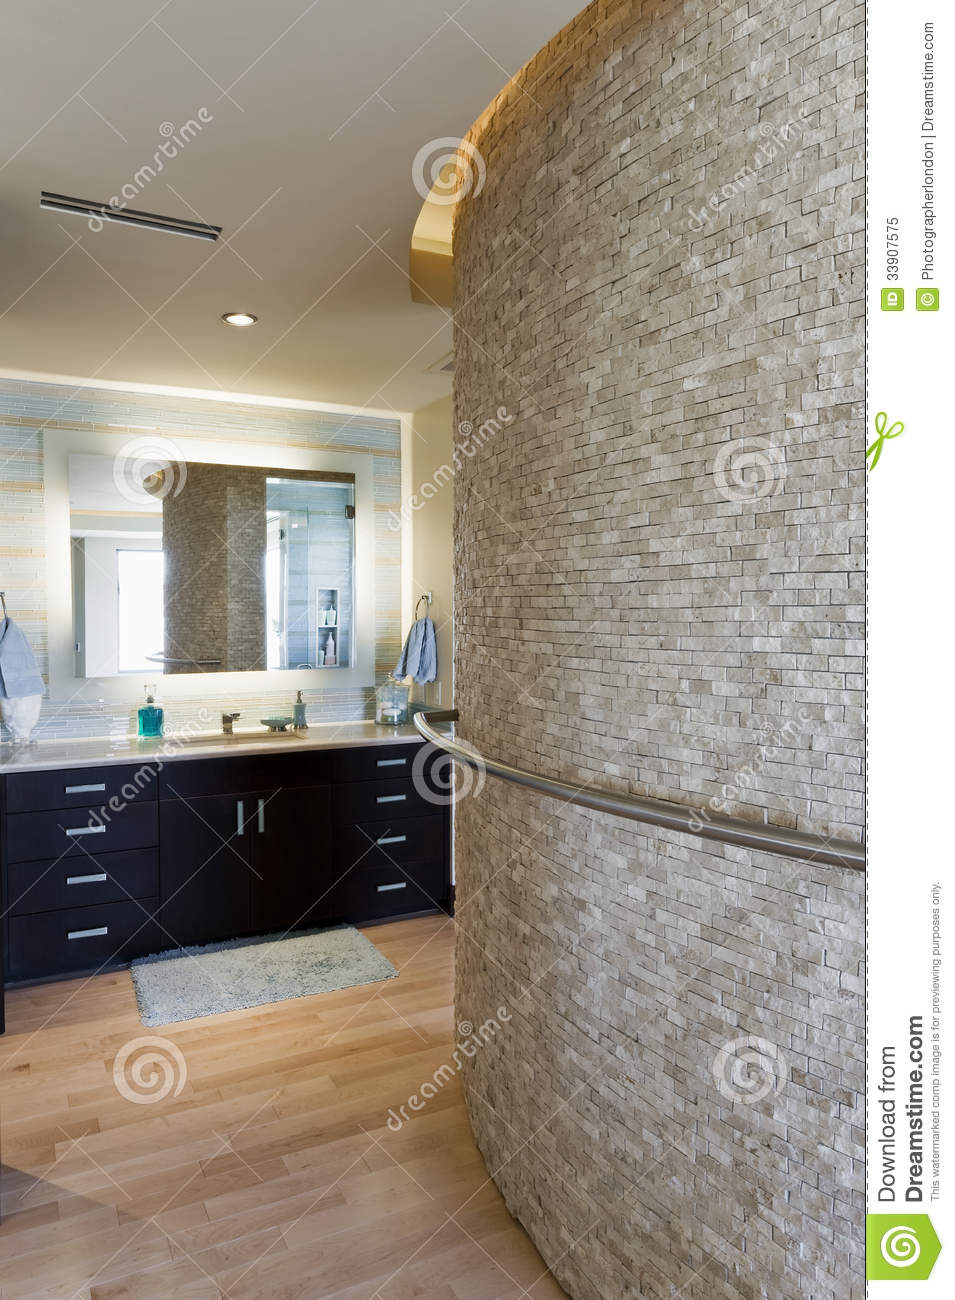 bathroom with curved stone wall and cabinets royalty free stock photo